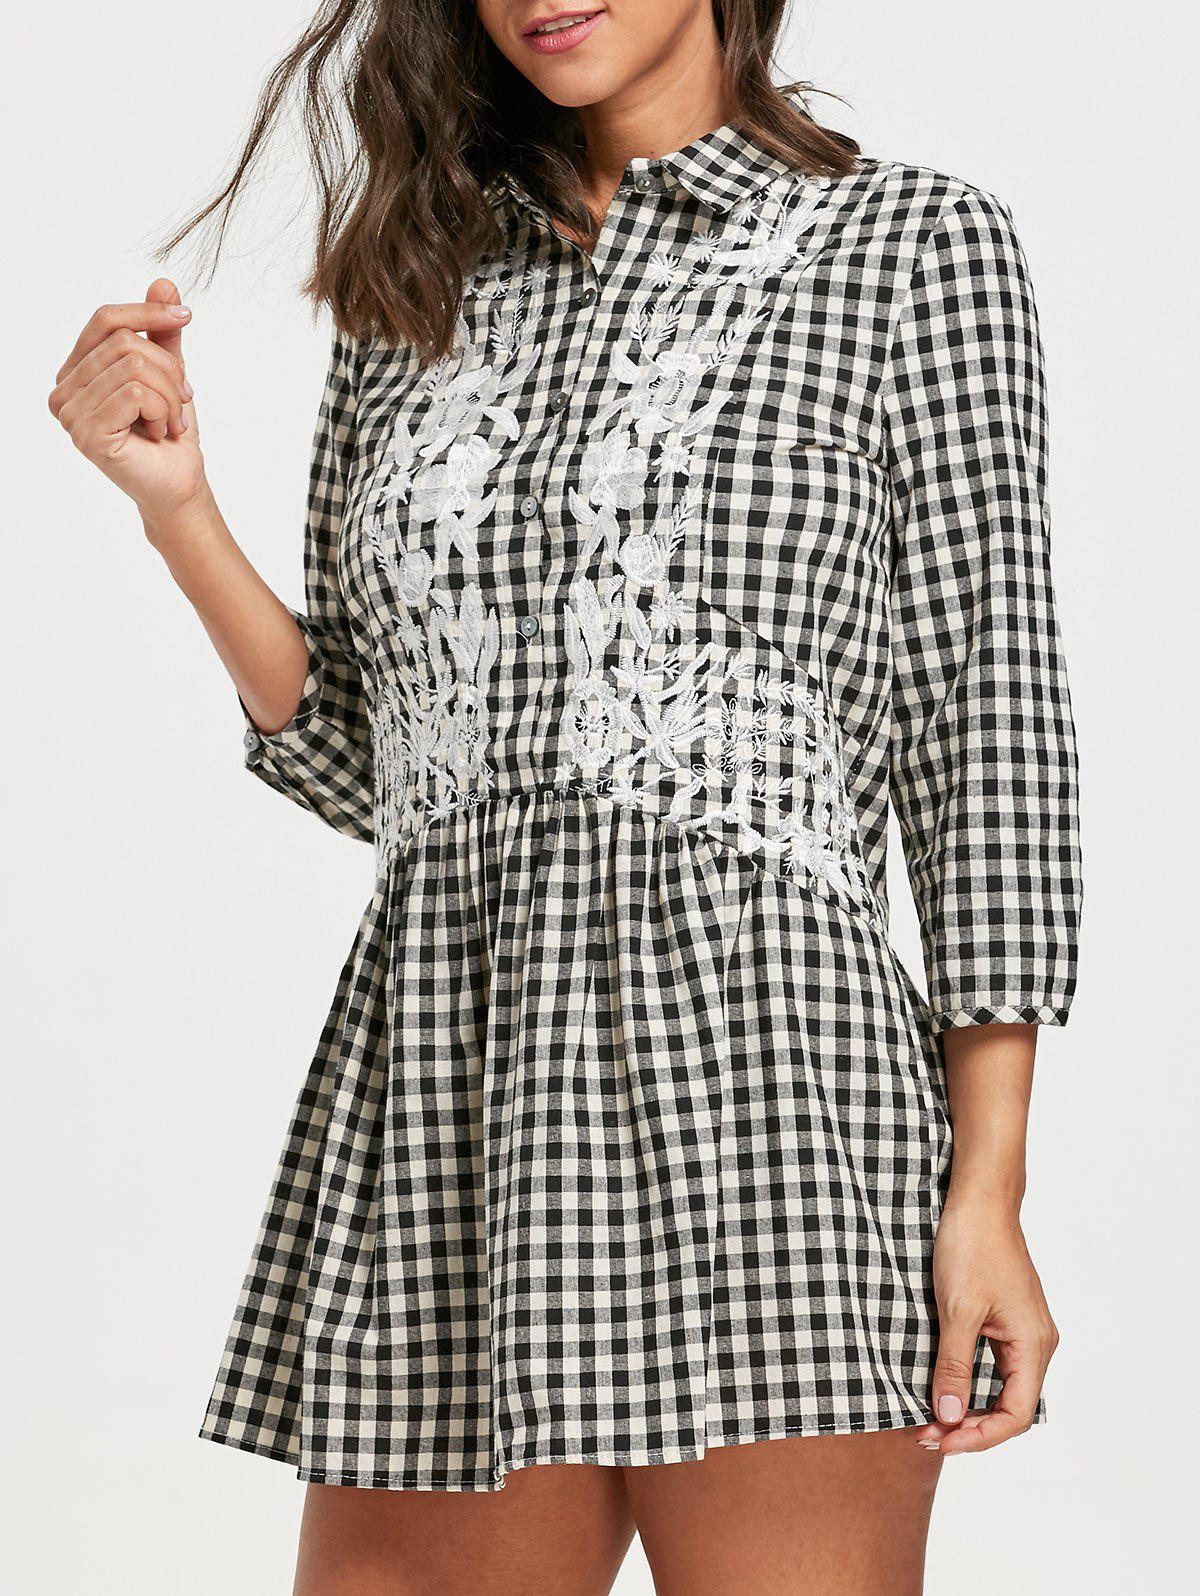 Drop Waist Plaid Floral Embroidered Dress - CHECKED L